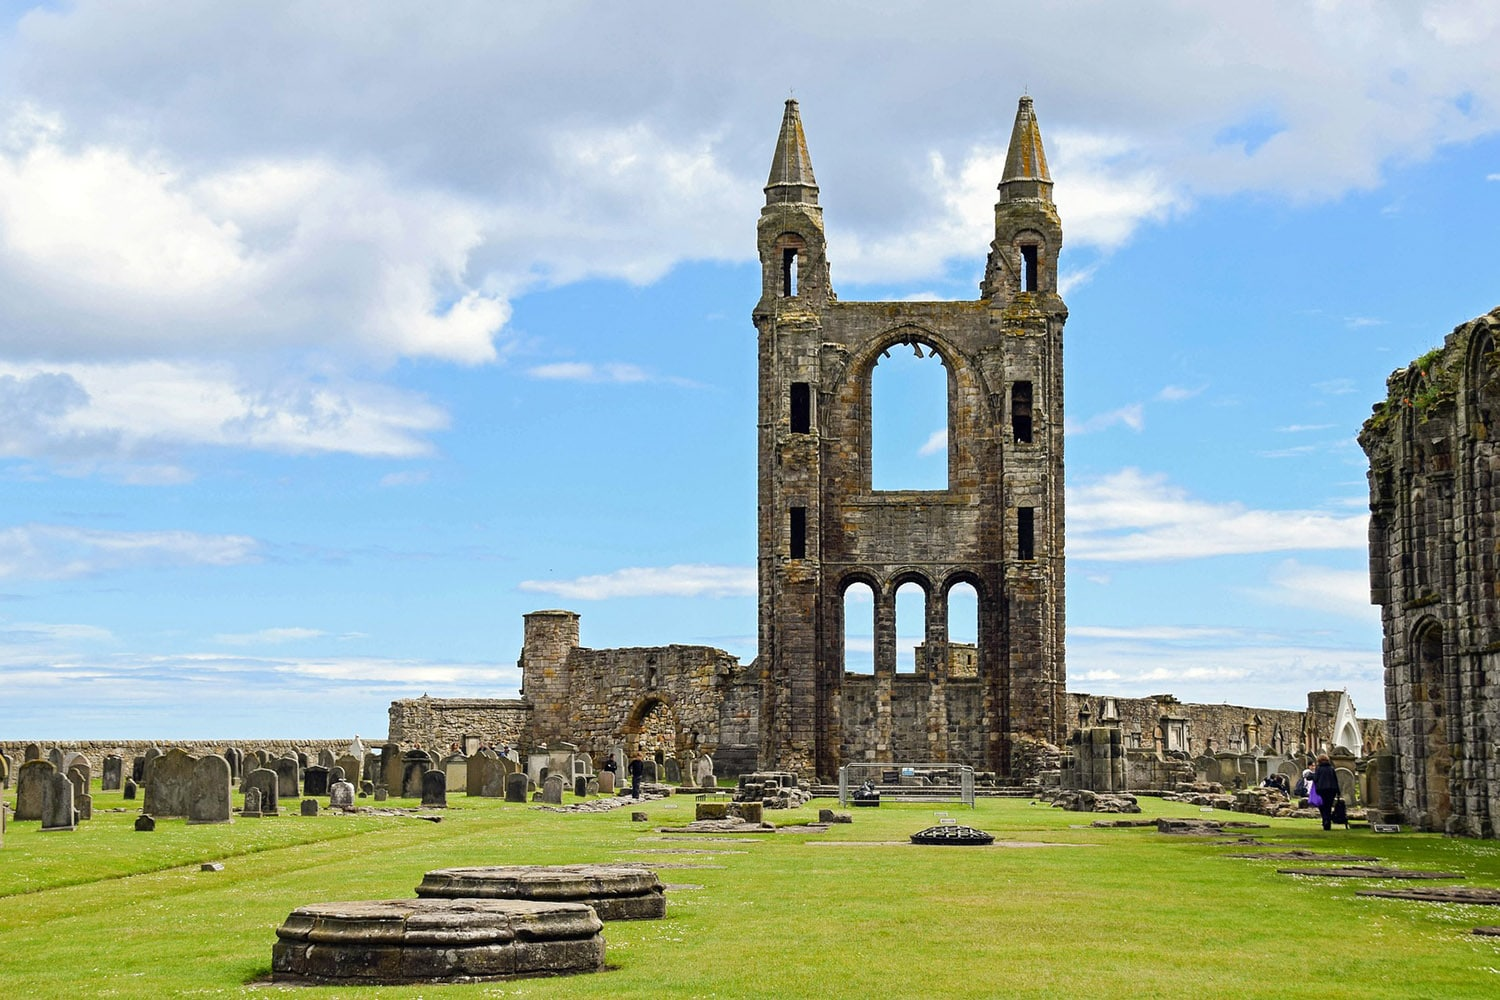 The cathedral in St Andrews makes an appearance in our royal and ancient tour of Scotland